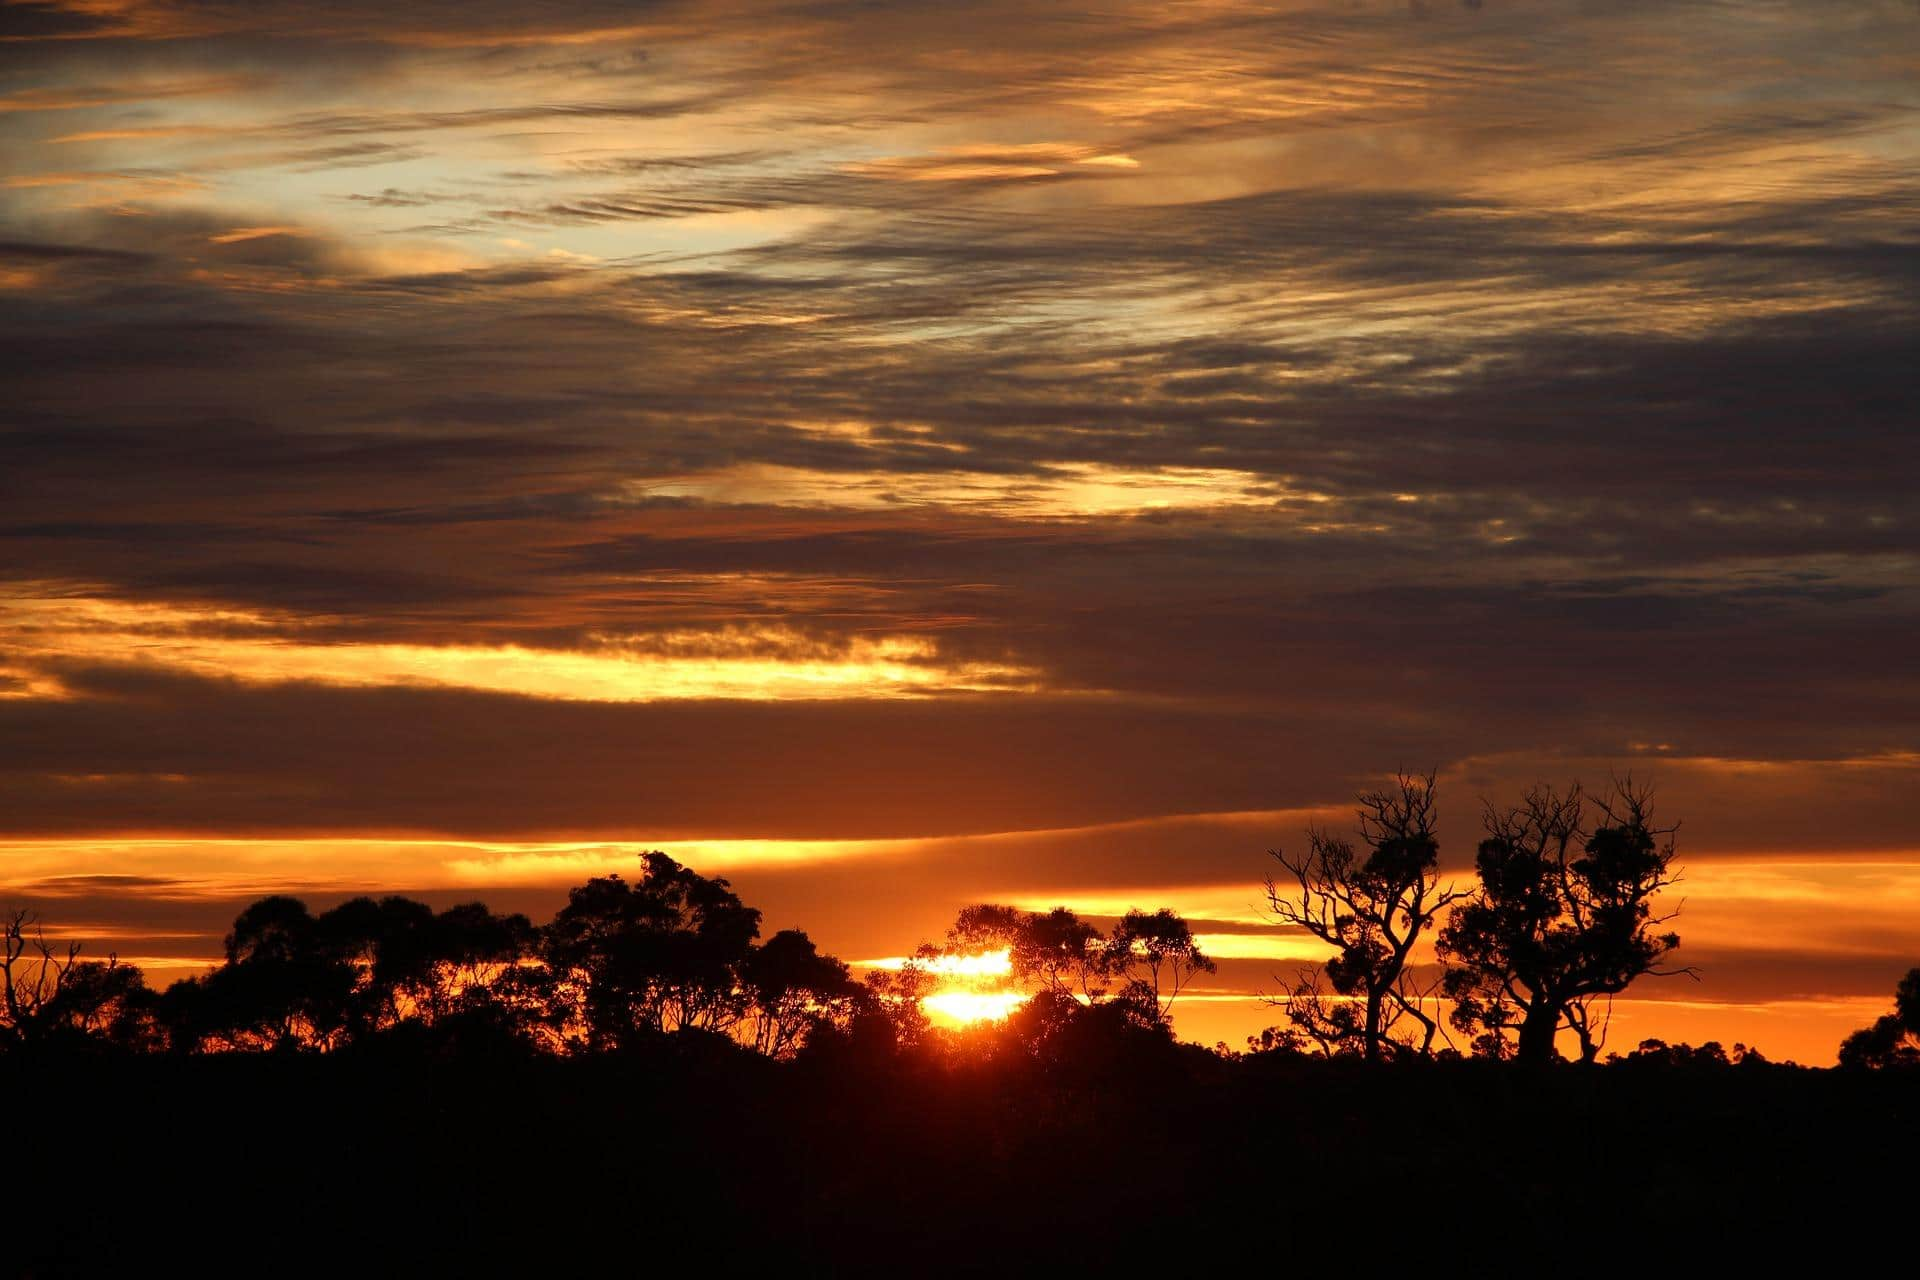 Western Australia's best road trip destinations - A sunset over the Margaret River is truly one of the most incredible sights in Australia, Australian Outdoor Living.